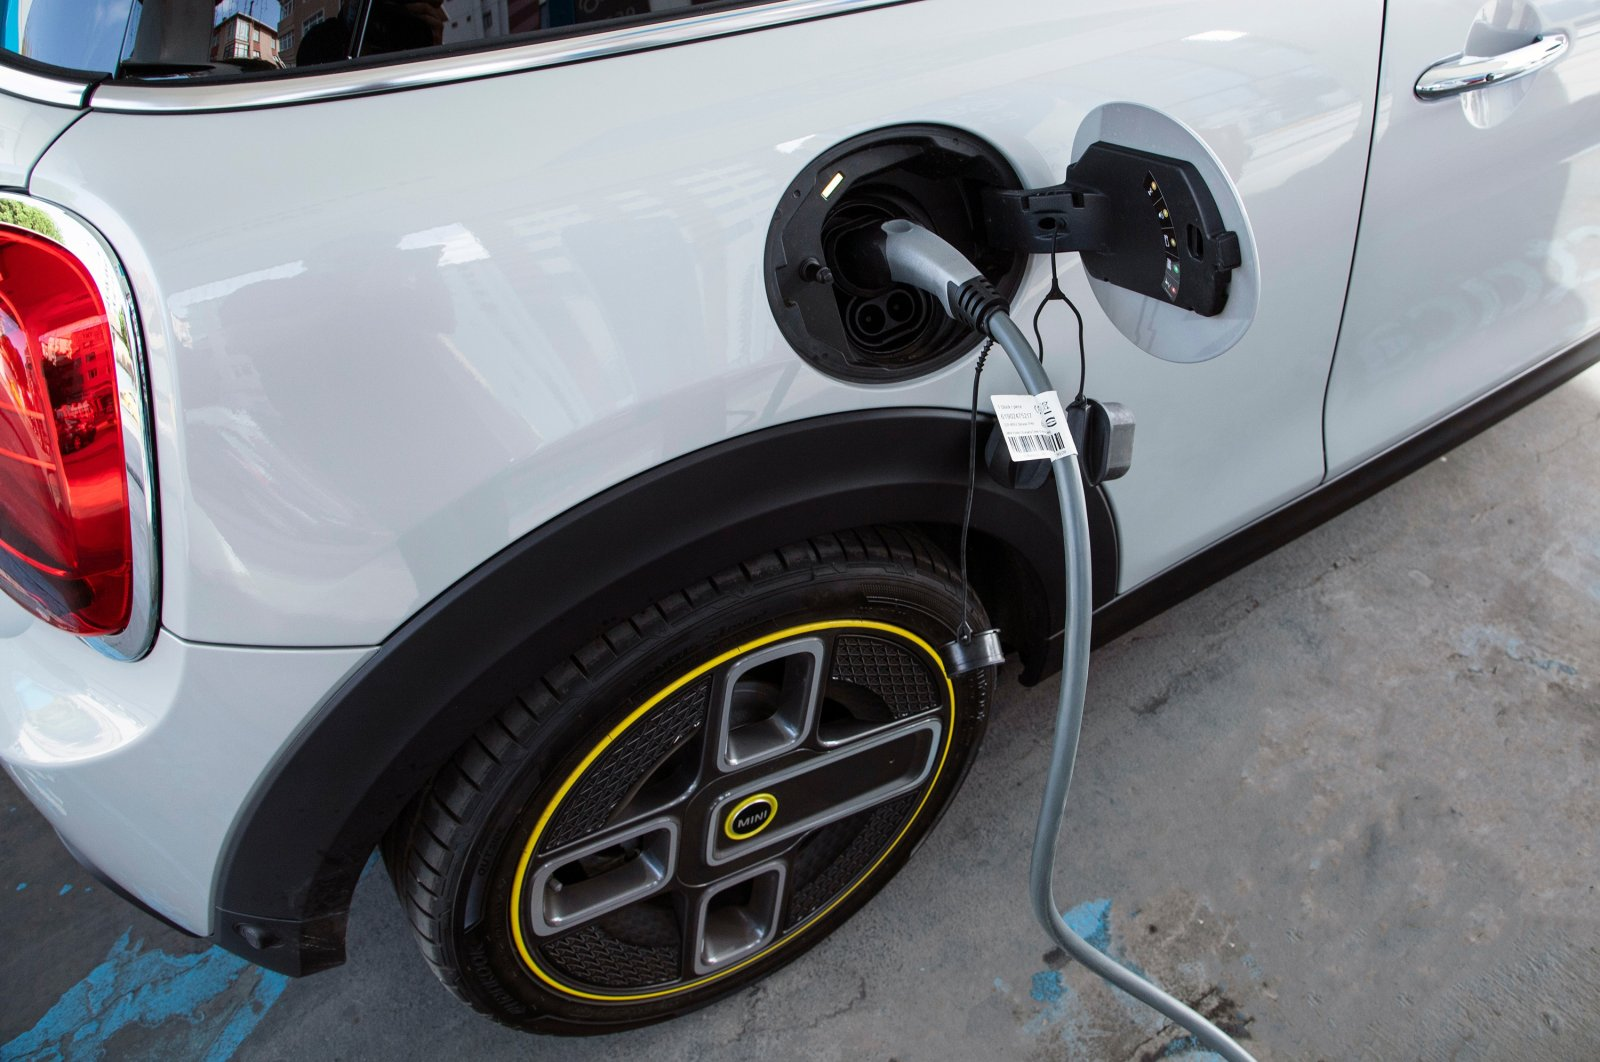 An electric car charges at a charging station in Istanbul, Turkey, Oct. 17, 2020. (Shutterstock Photo)